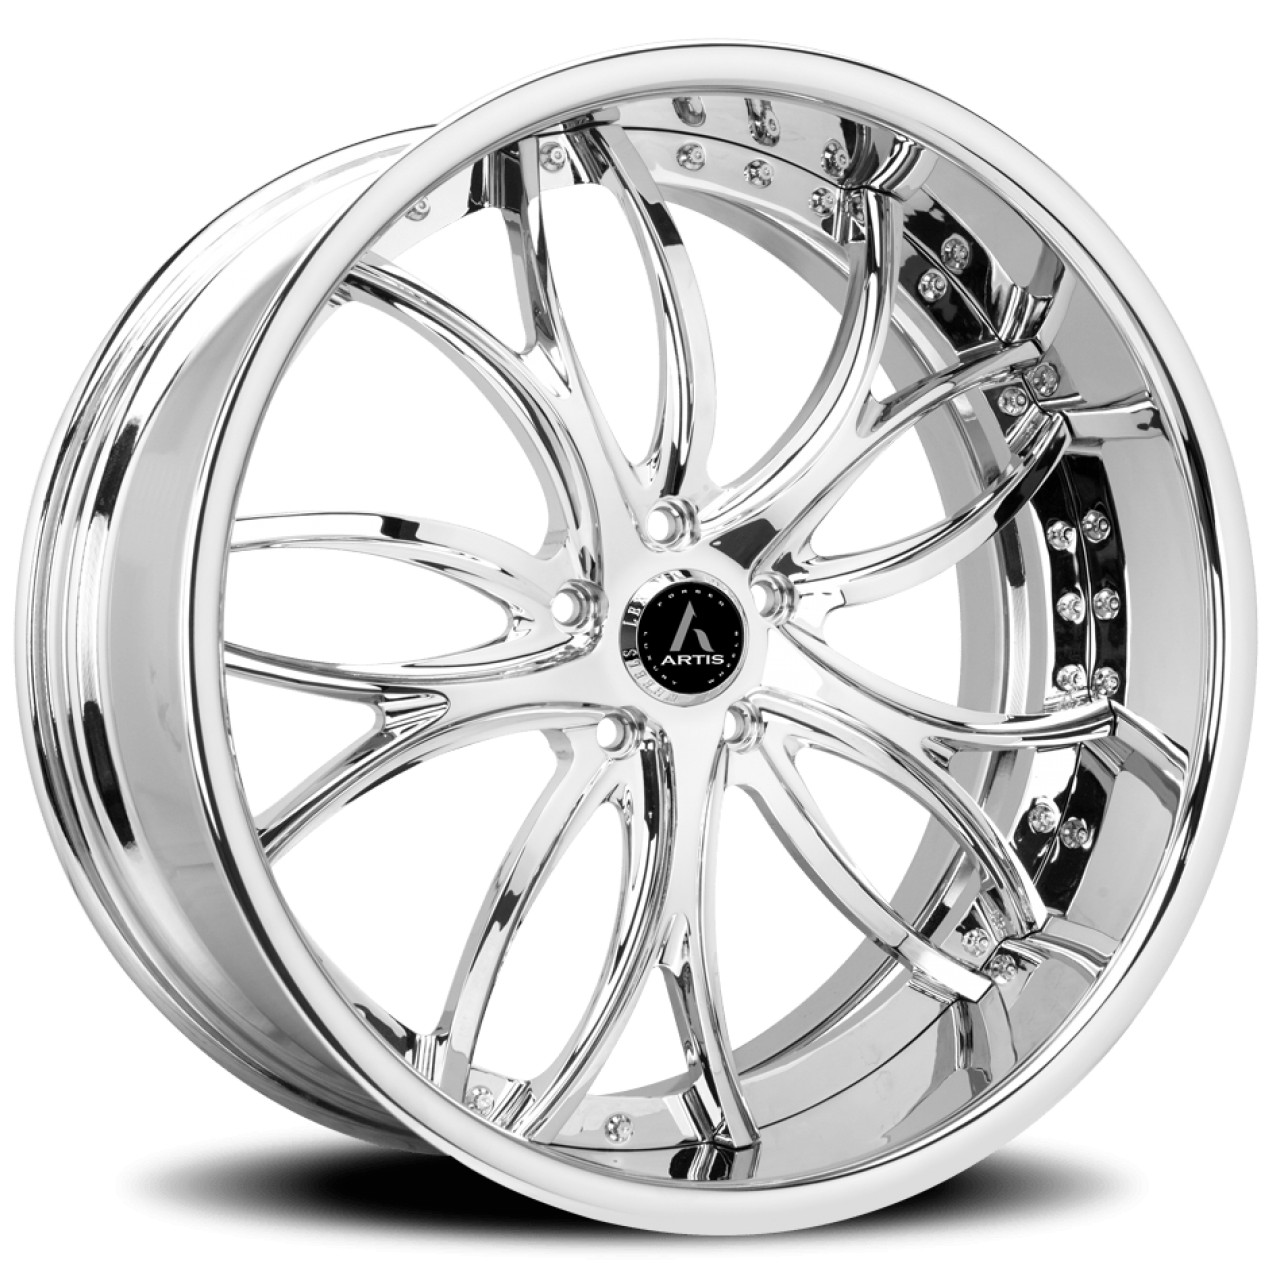 Artis Forged Biscayne wheel with Chrome finish